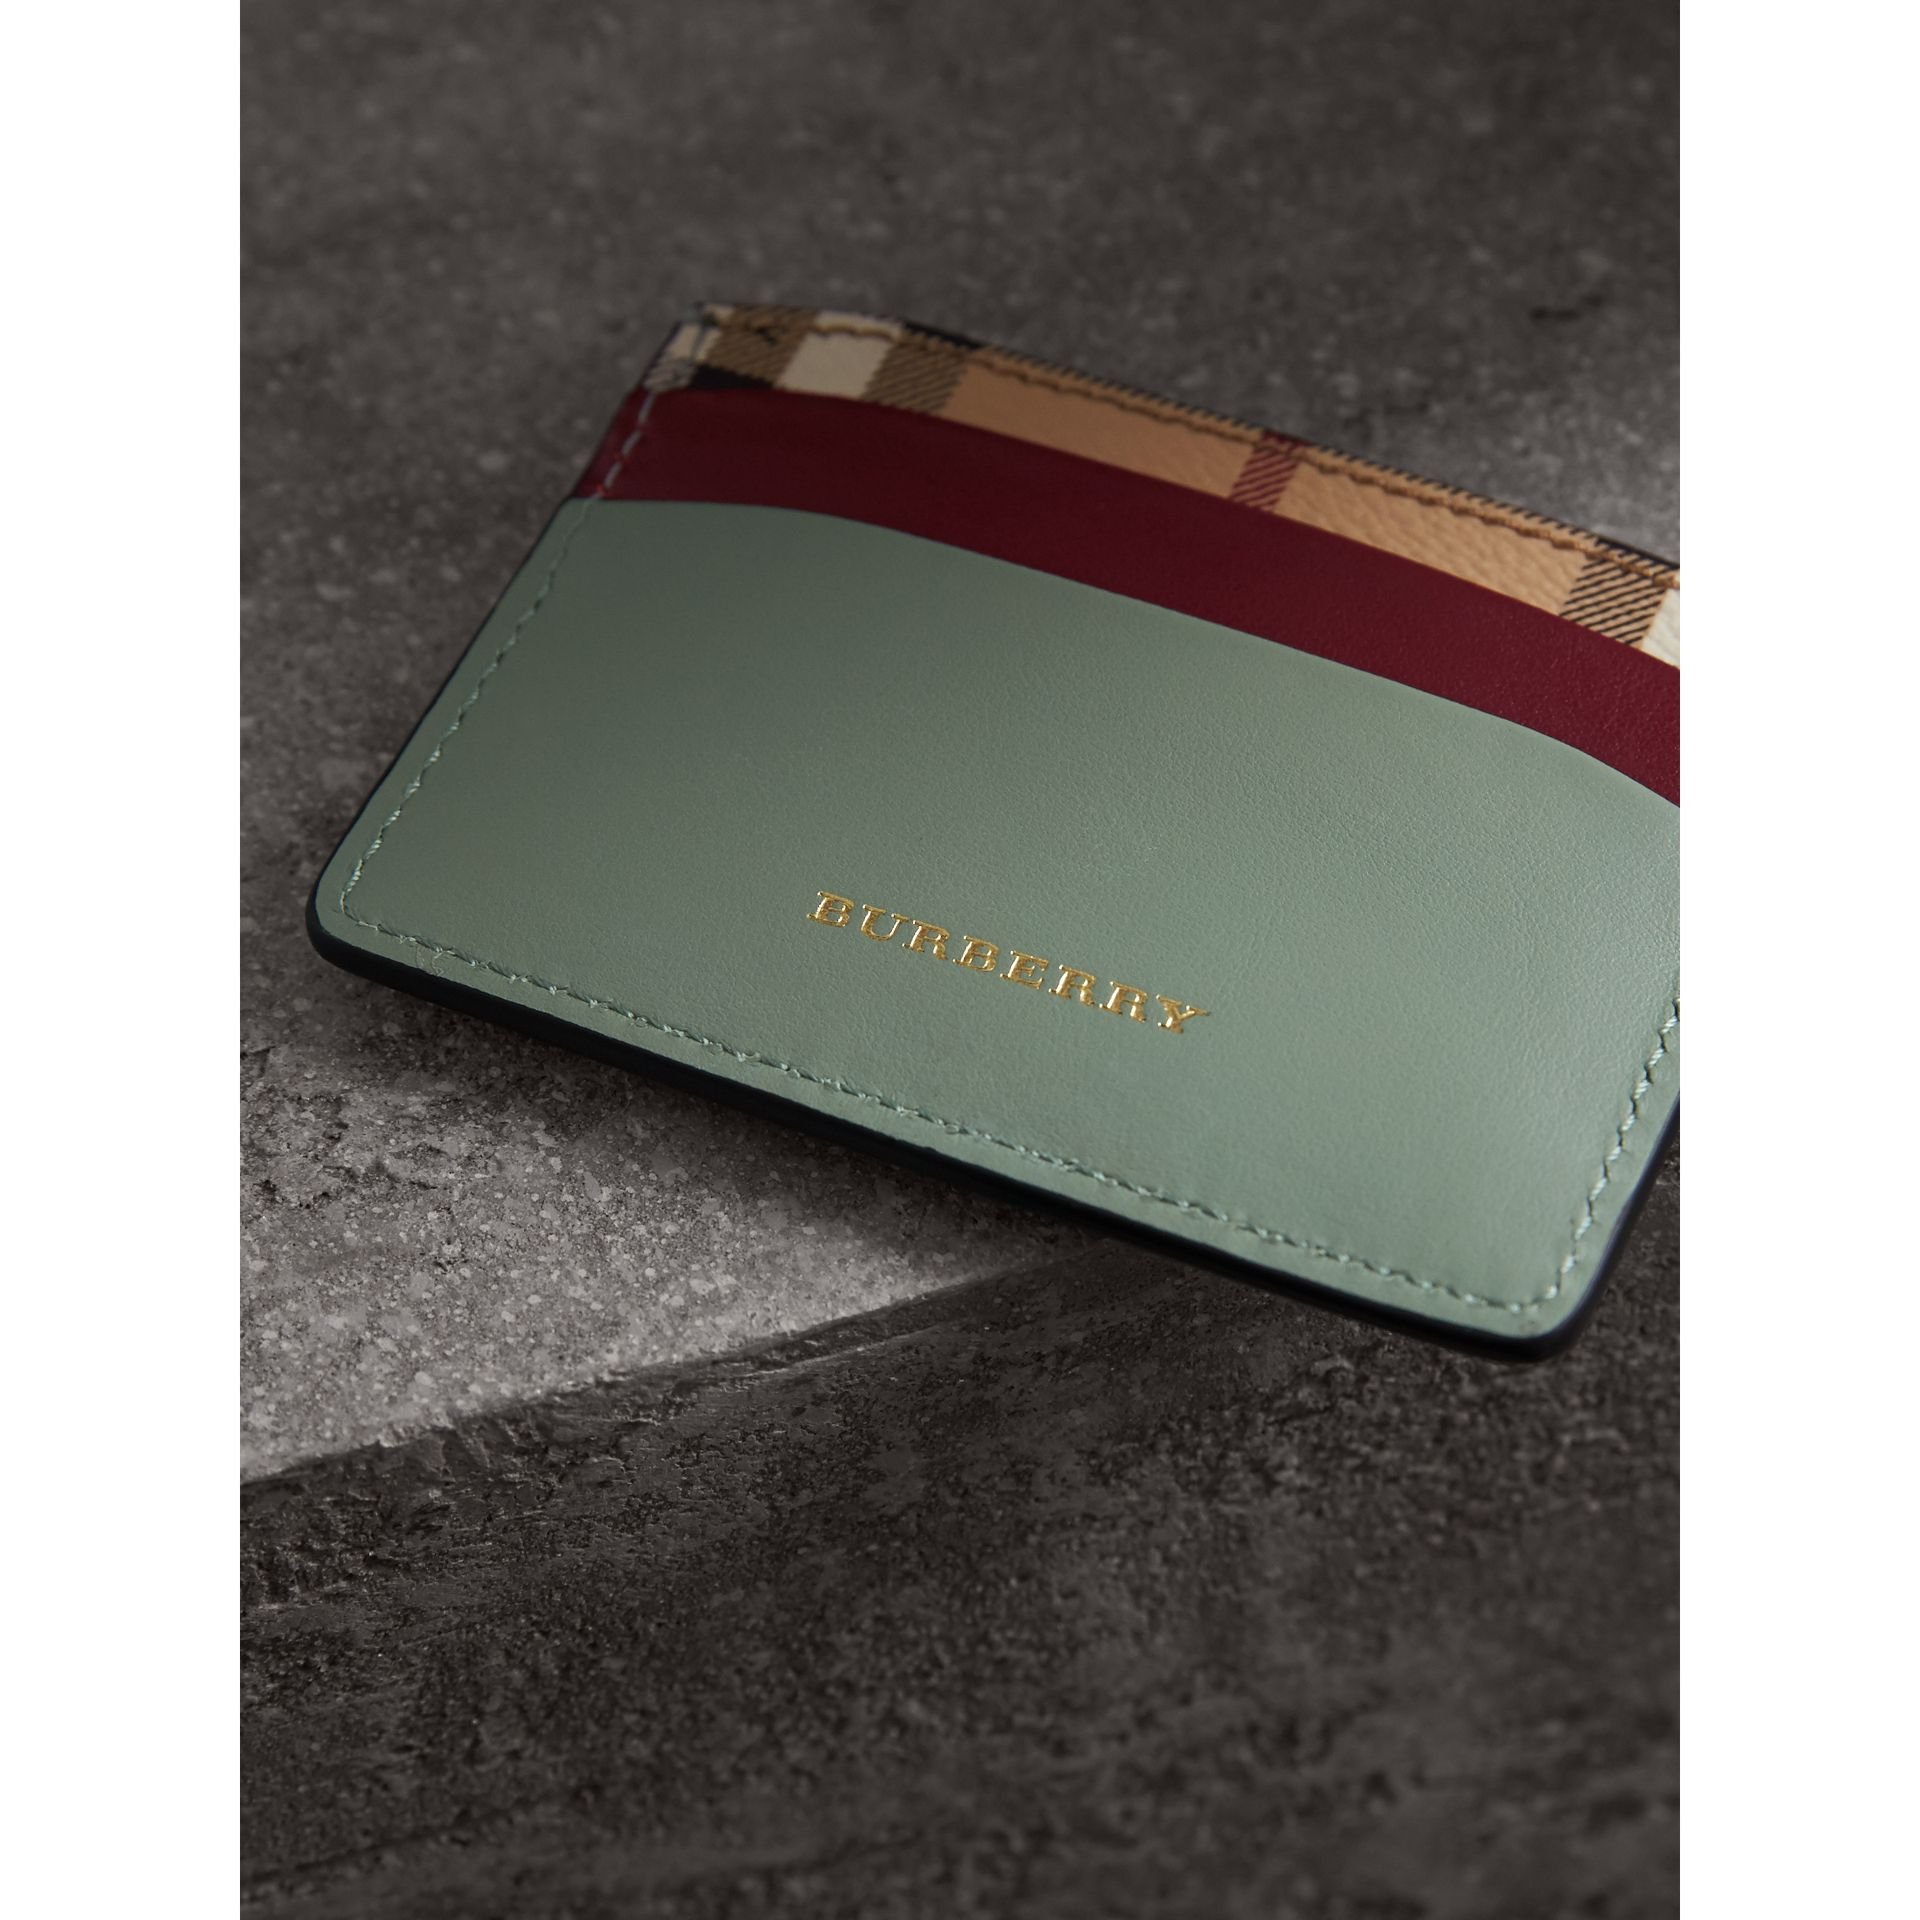 Beasts Motif Haymarket Check and Leather Card Case in Celadon Green - Women | Burberry - gallery image 2